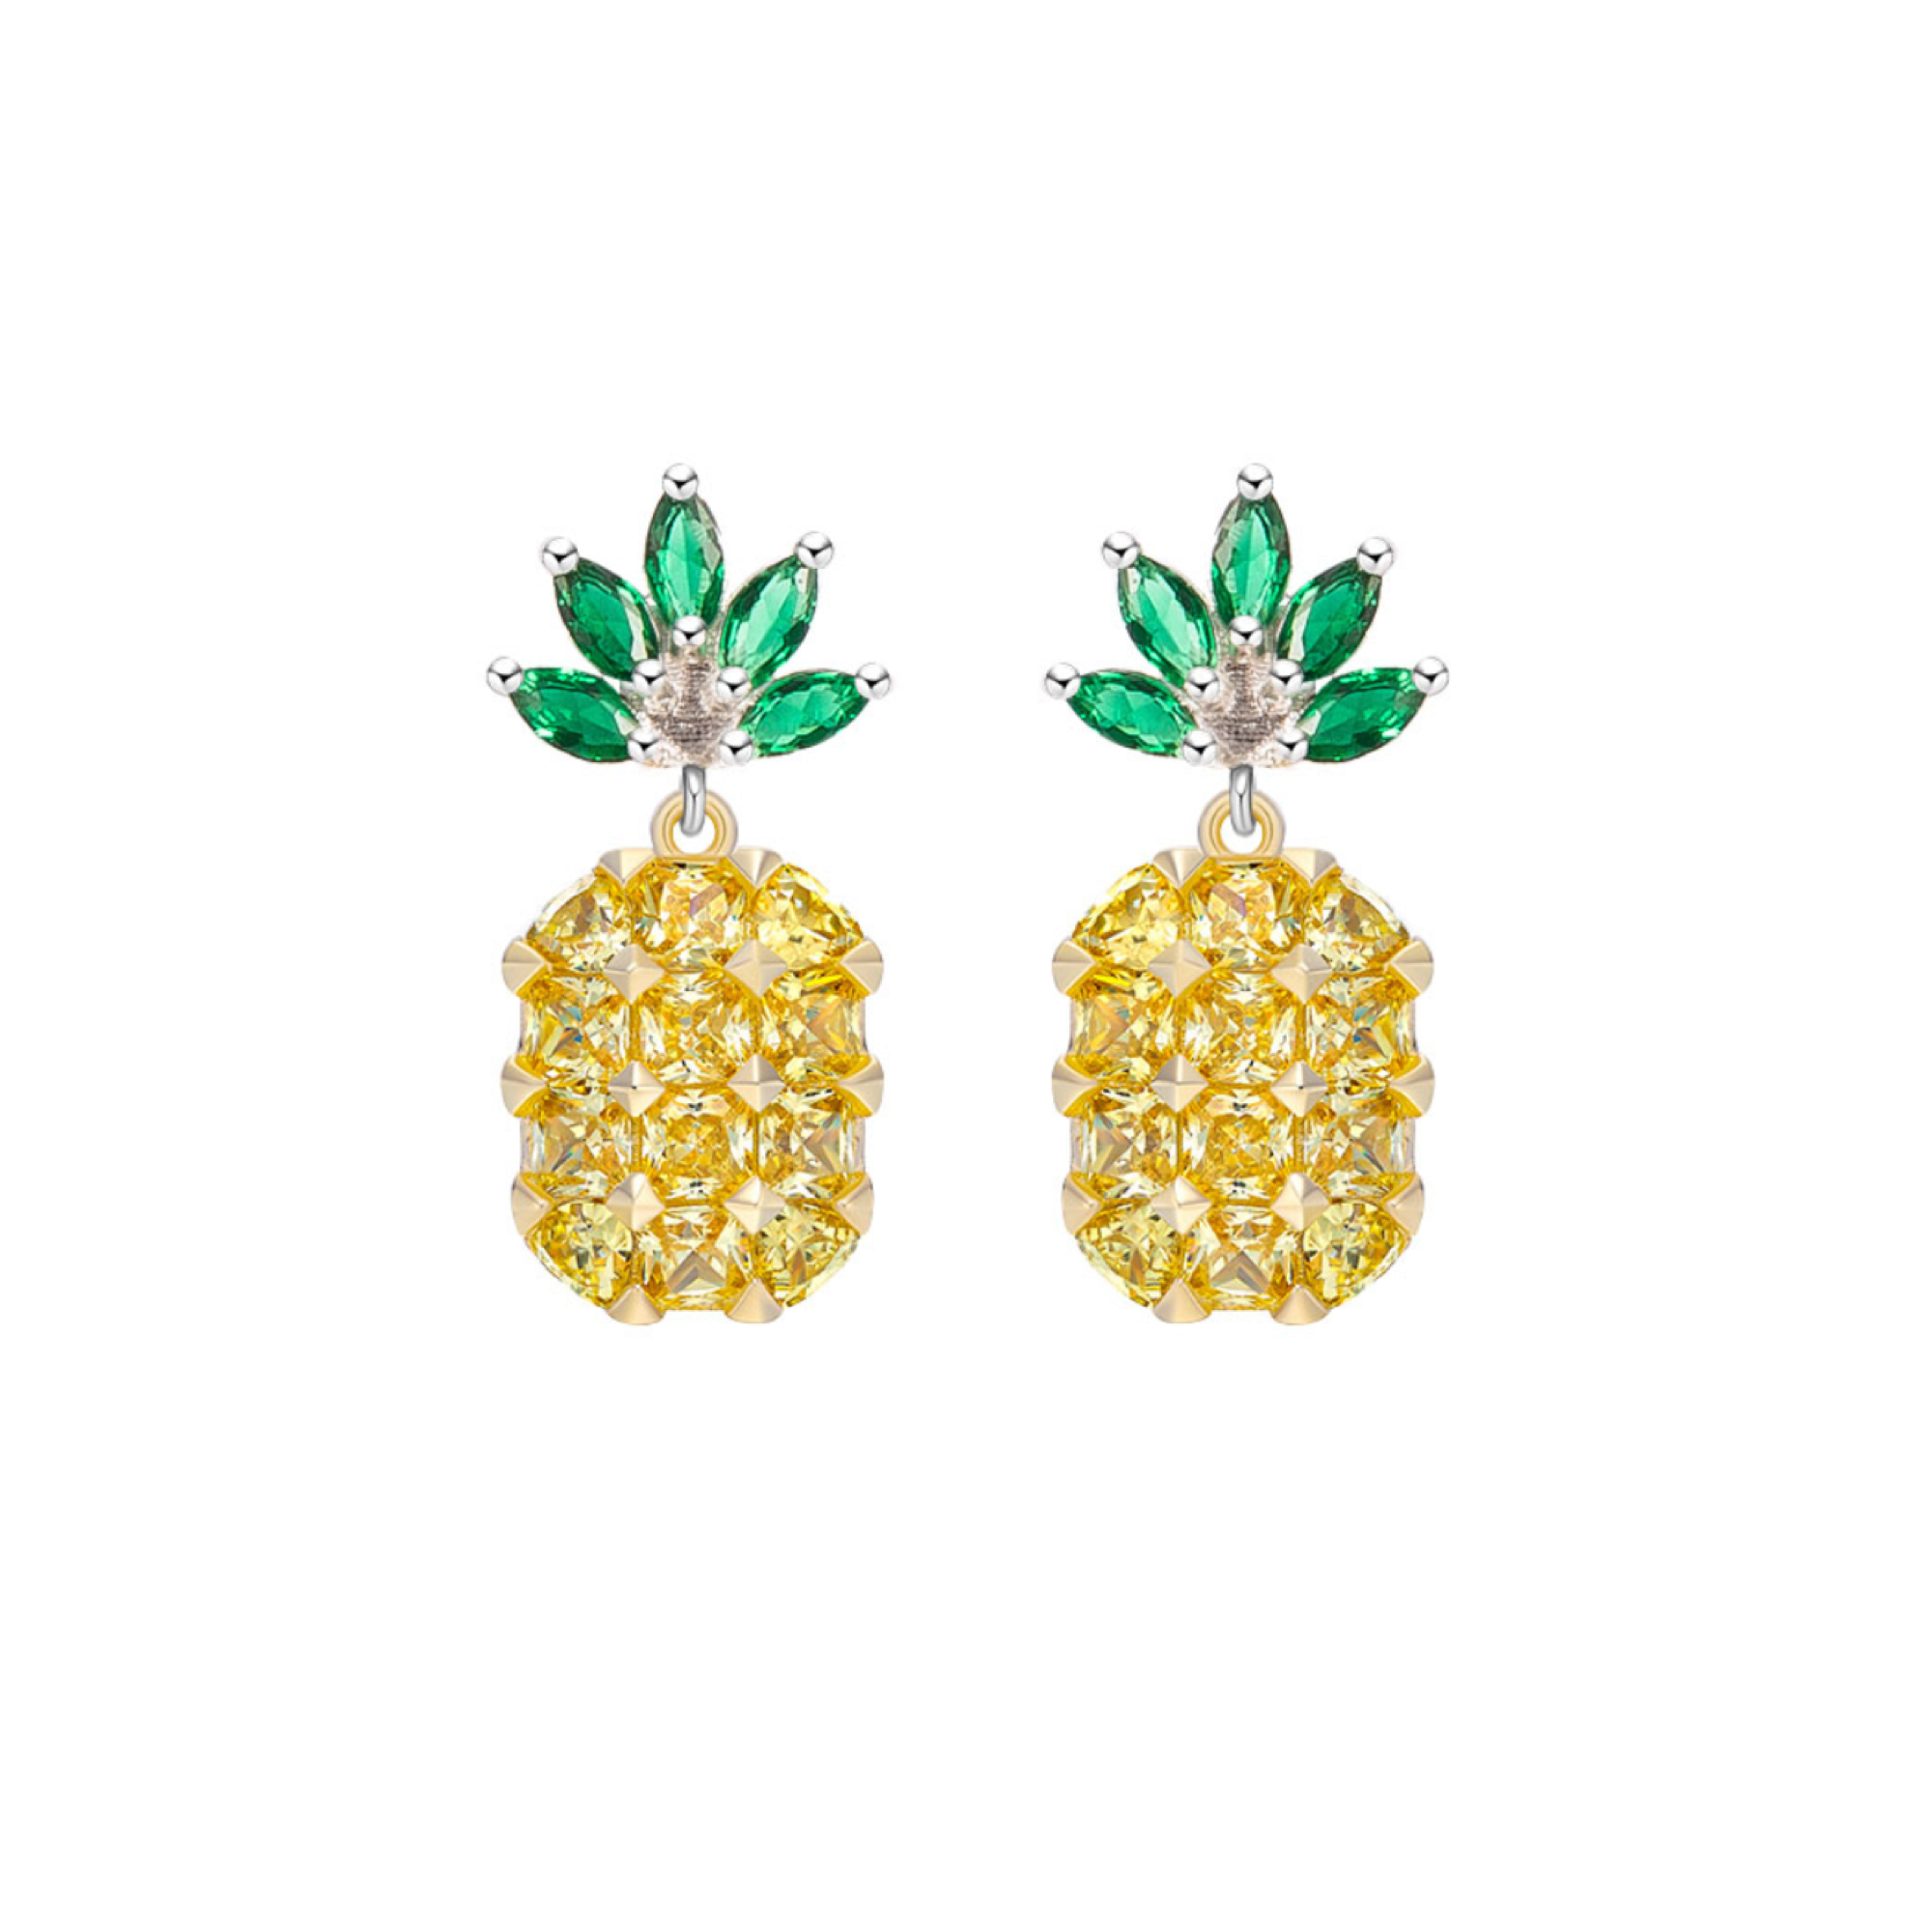 Sterling Silver Mini Pineapple Gemstone Earrings